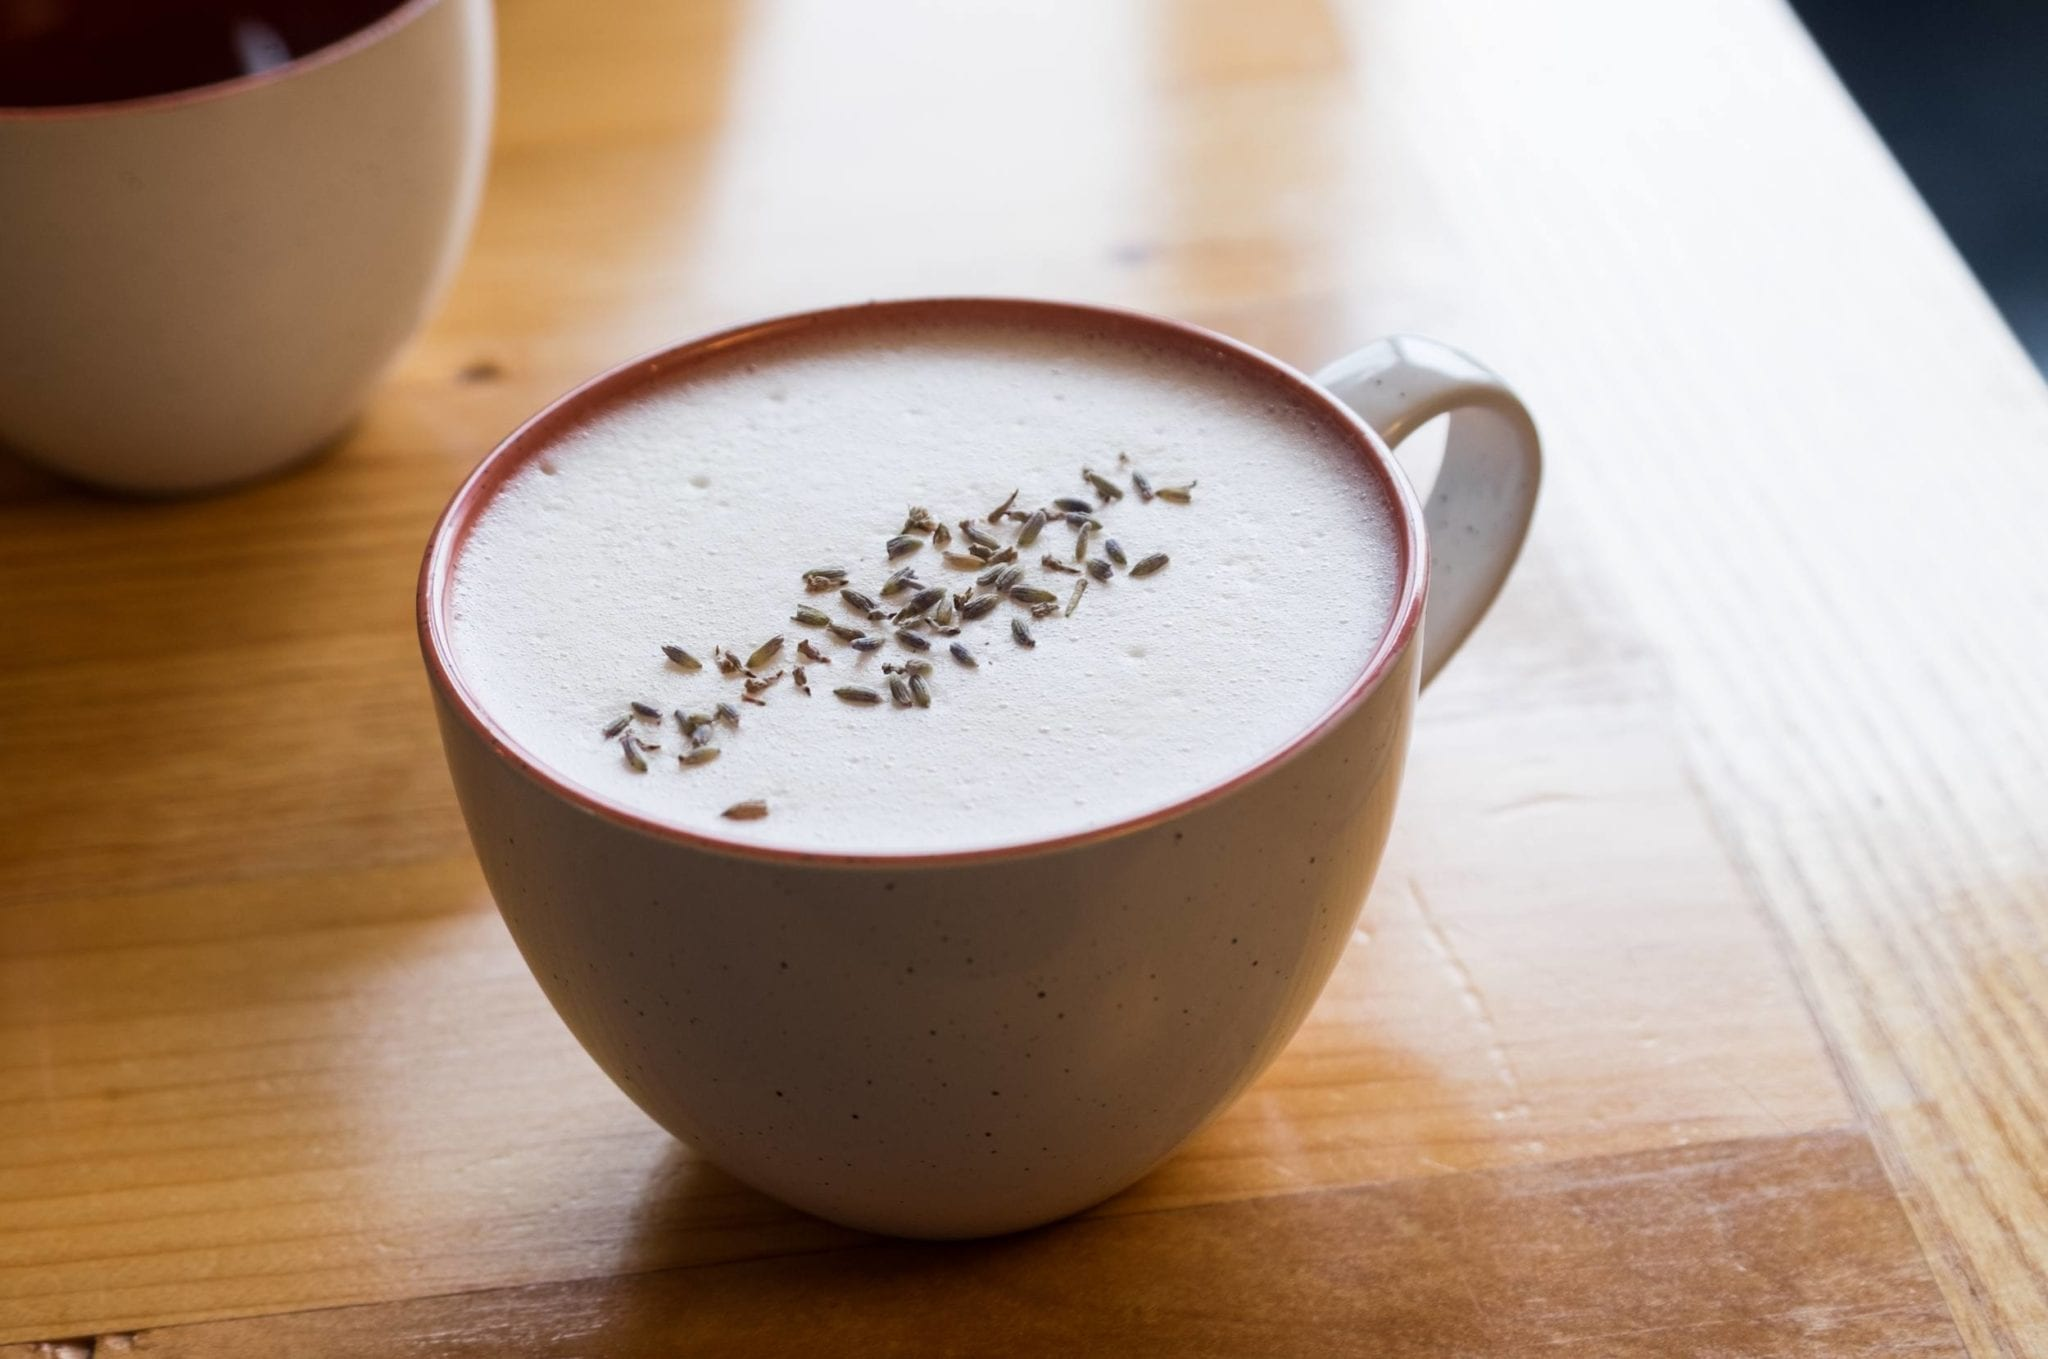 A latte topped with lavender seeds (which are not tasty).